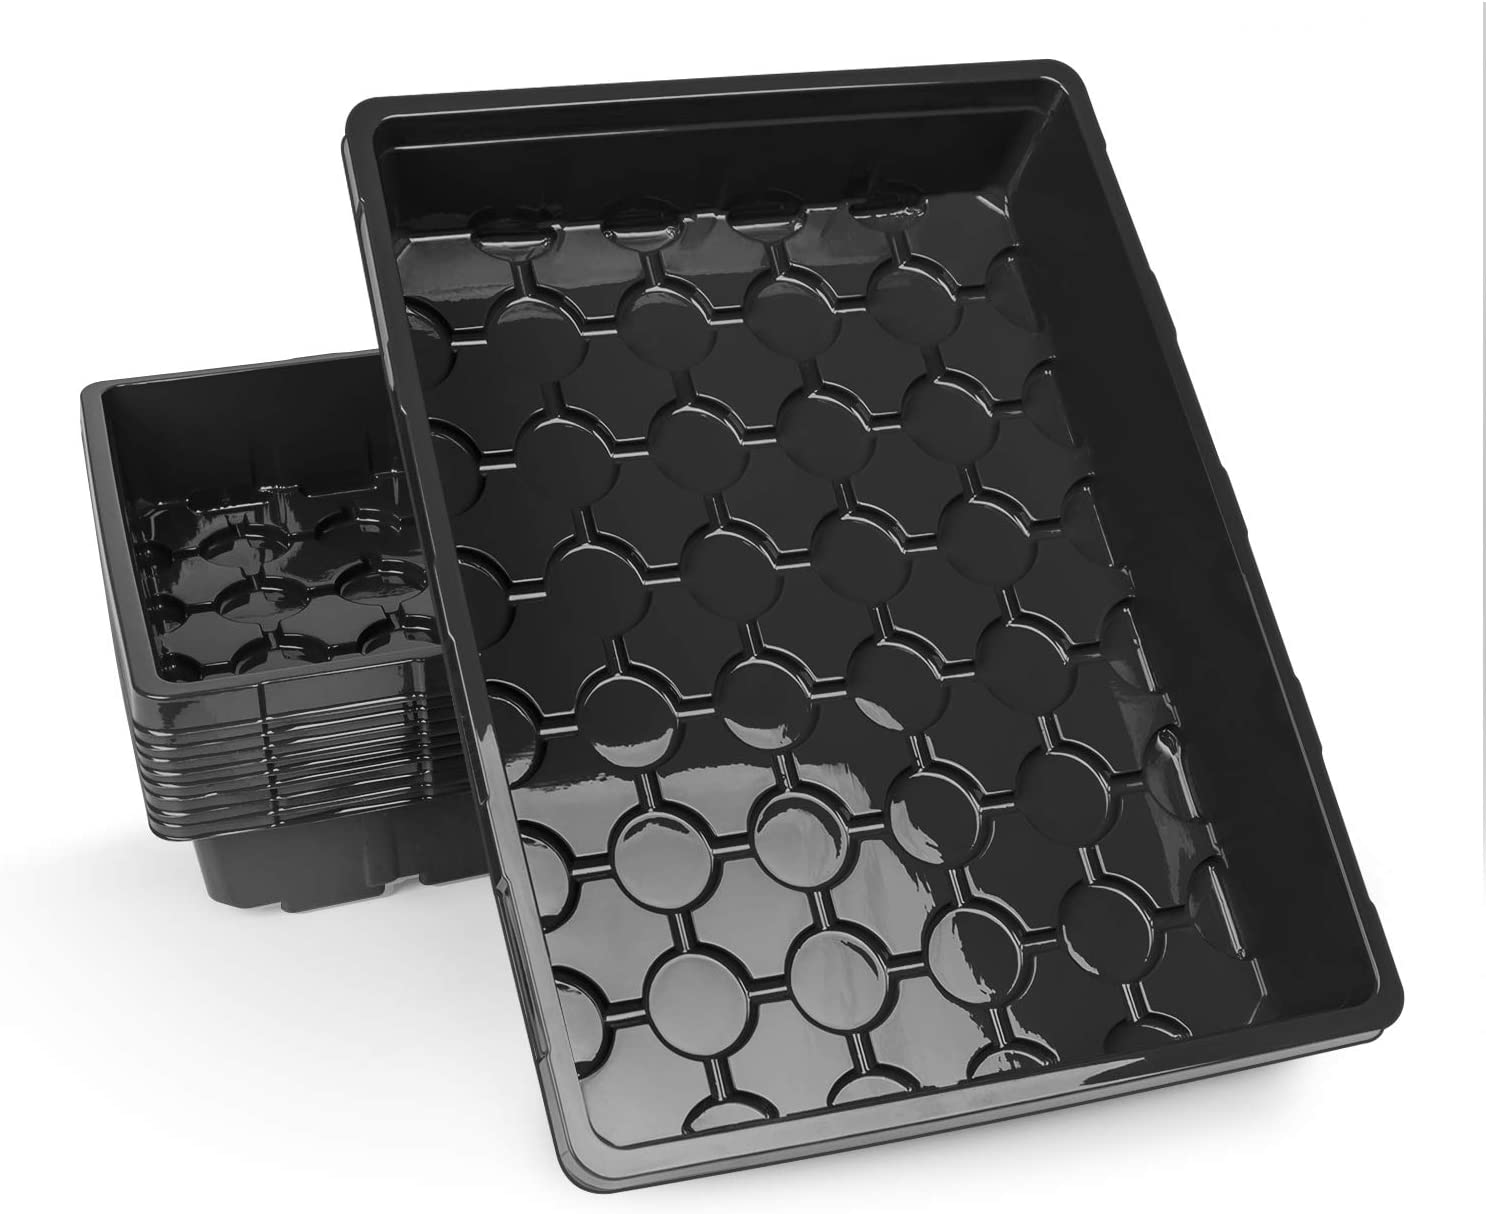 10-Pack Strong Seed Trays, Durable Black Plastic Growing Trays (Without Drain Holes) for Microgreens, Soil Blocks, Wheatgrass, Hydroponic -14.2inch x 10.8inch x 2.6inch - Black